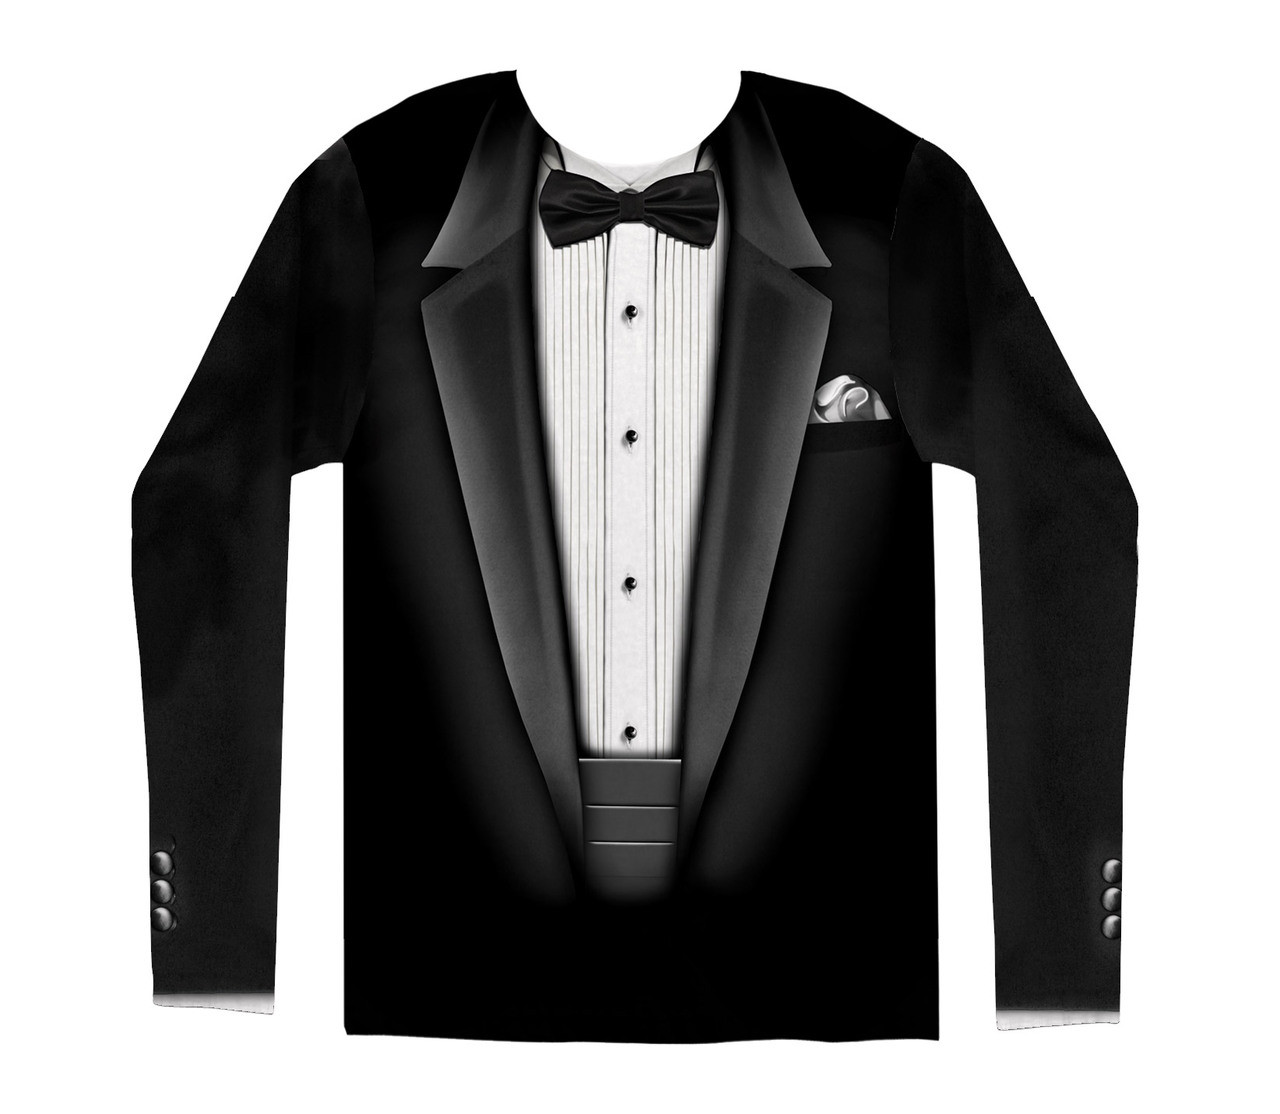 8a942606a Tuxedo Costume Sublimated Long Sleeve T-Shirt. Loading zoom